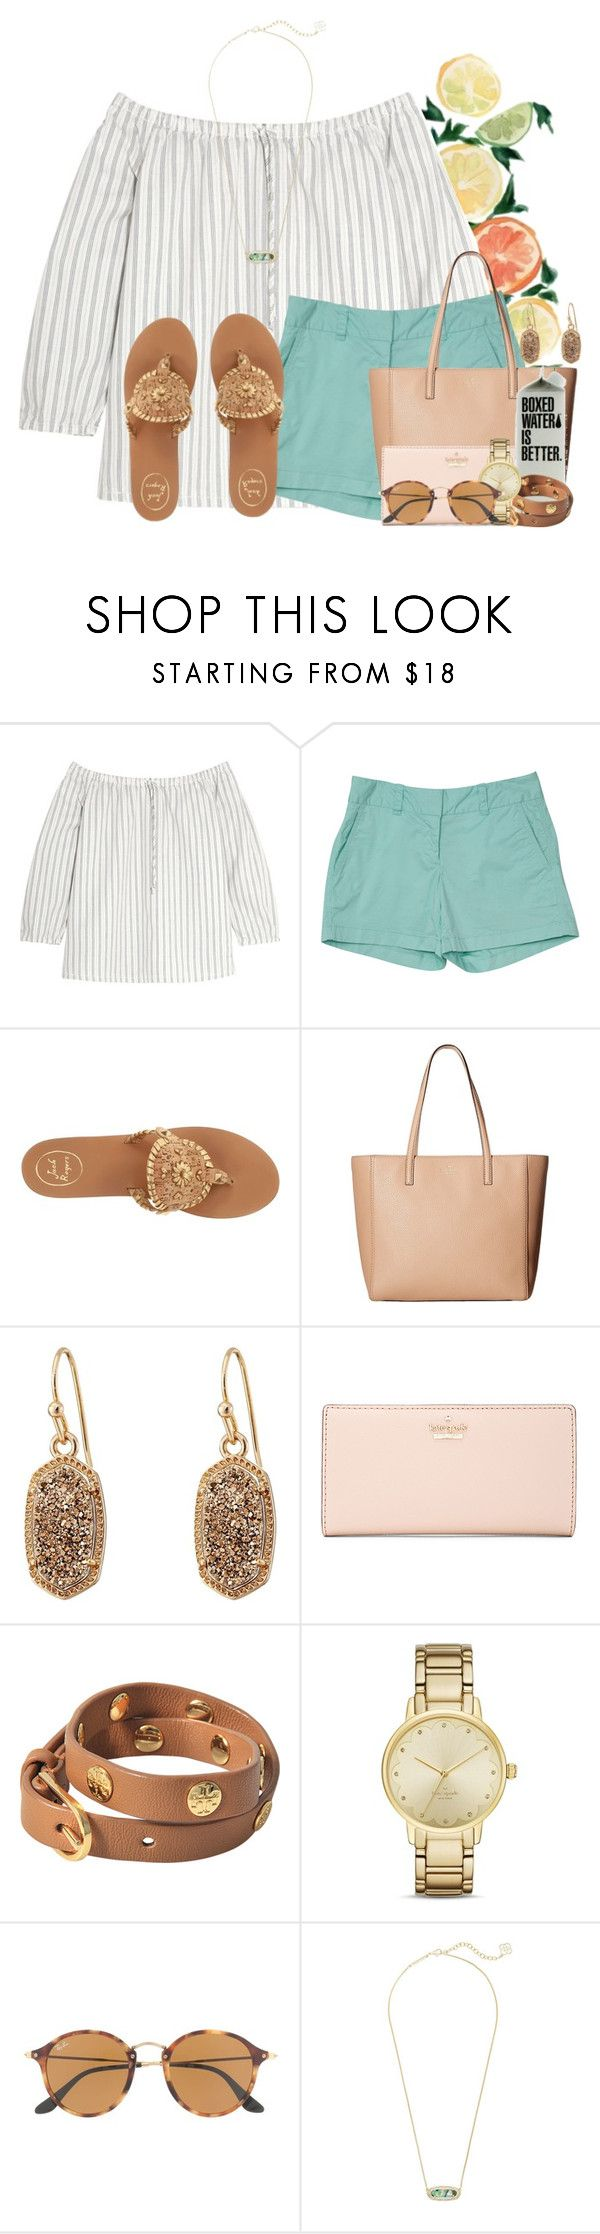 """Breakfast at Panera!!"" by flroasburn ❤ liked on Polyvore featuring Madewell, Jack Rogers, Kate Spade, Kendra Scott, Tory Burch and Ray-Ban"